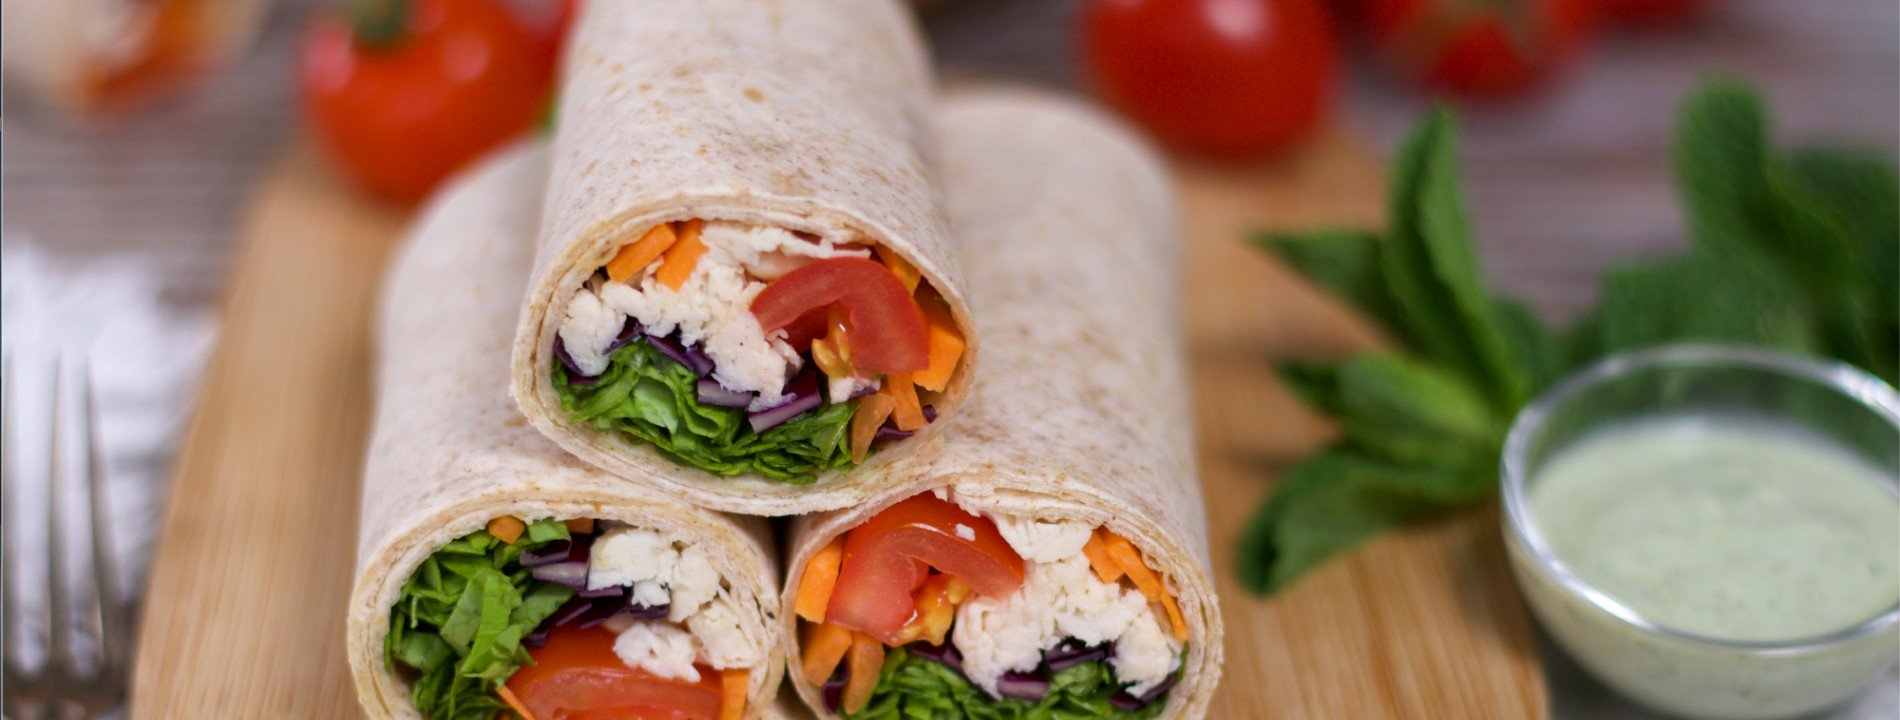 Chicken Wrap with Mint Sauce